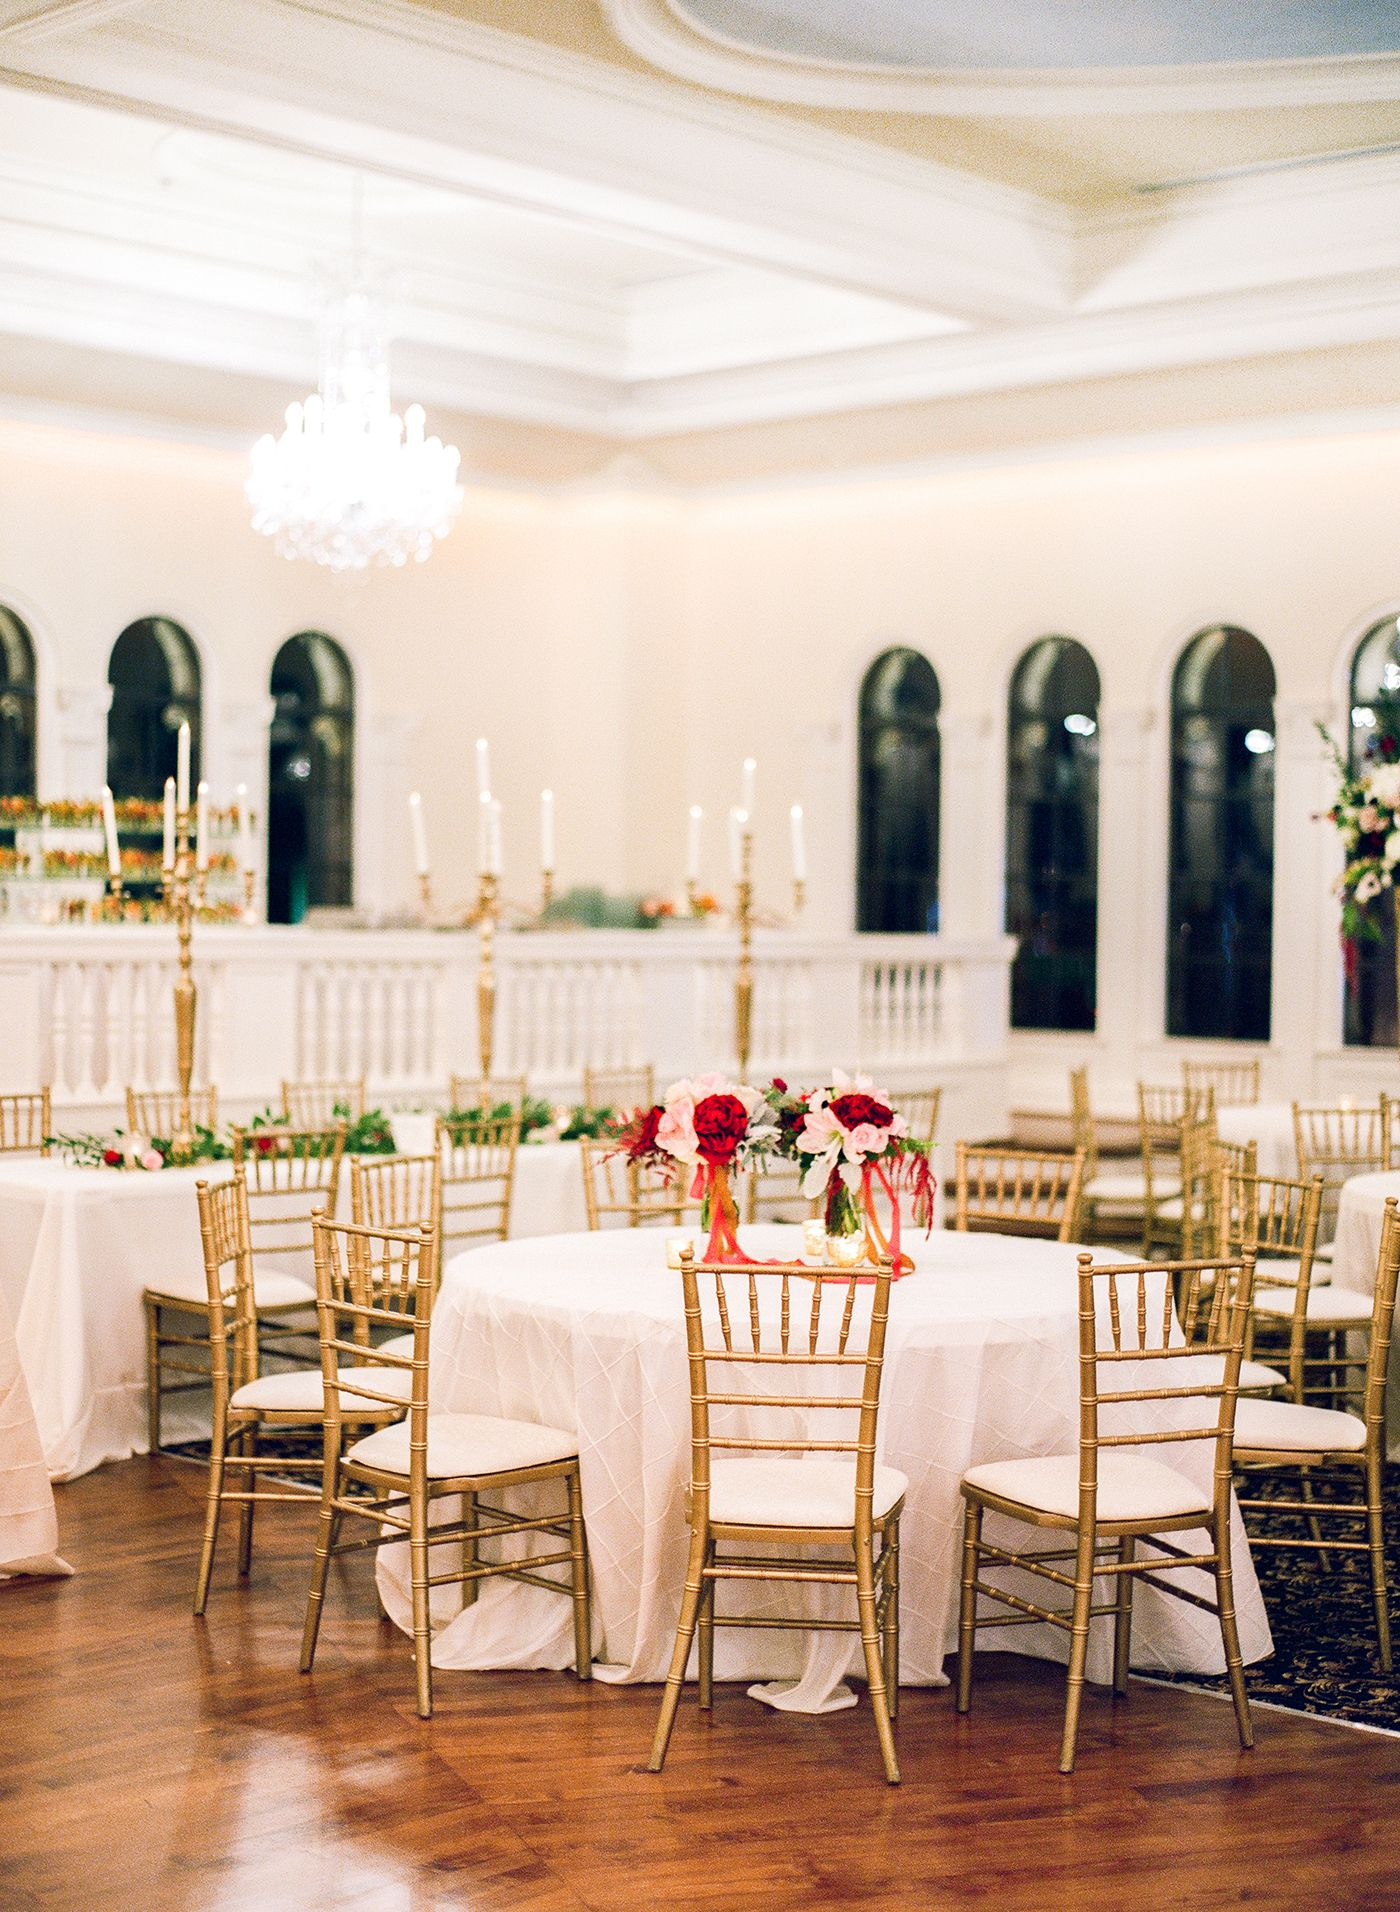 The Florentine Building Birmingham Al Wedding Reception At The Florentine Photo By Leslee Mitchell Diy Boho Decor Birmingham Wedding Christmas Lights Inside